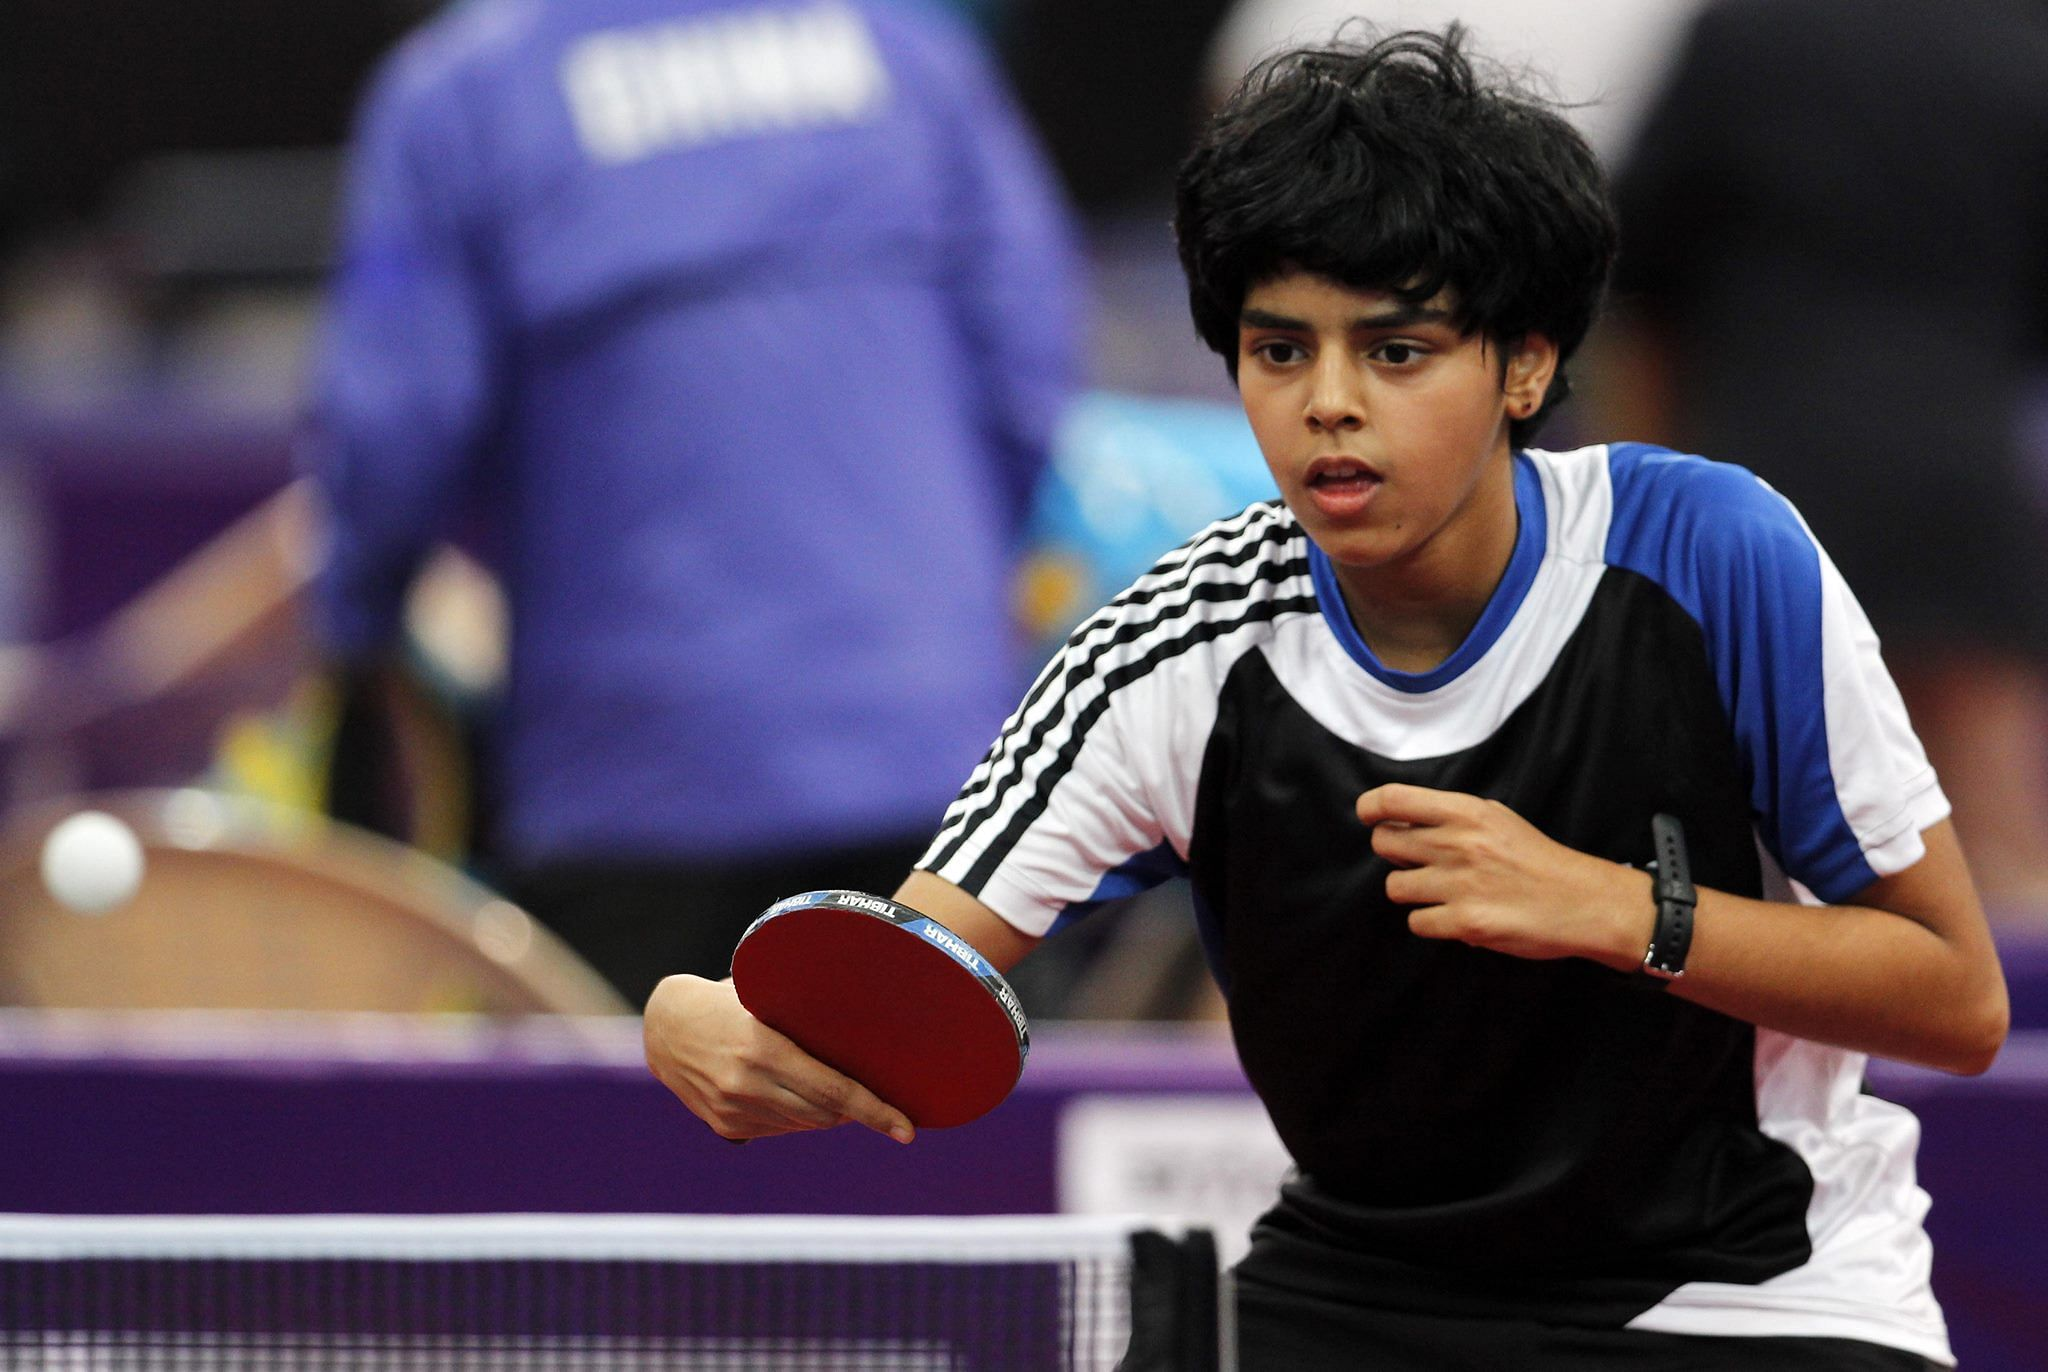 Archana reach quarters in Thailand TT tourney